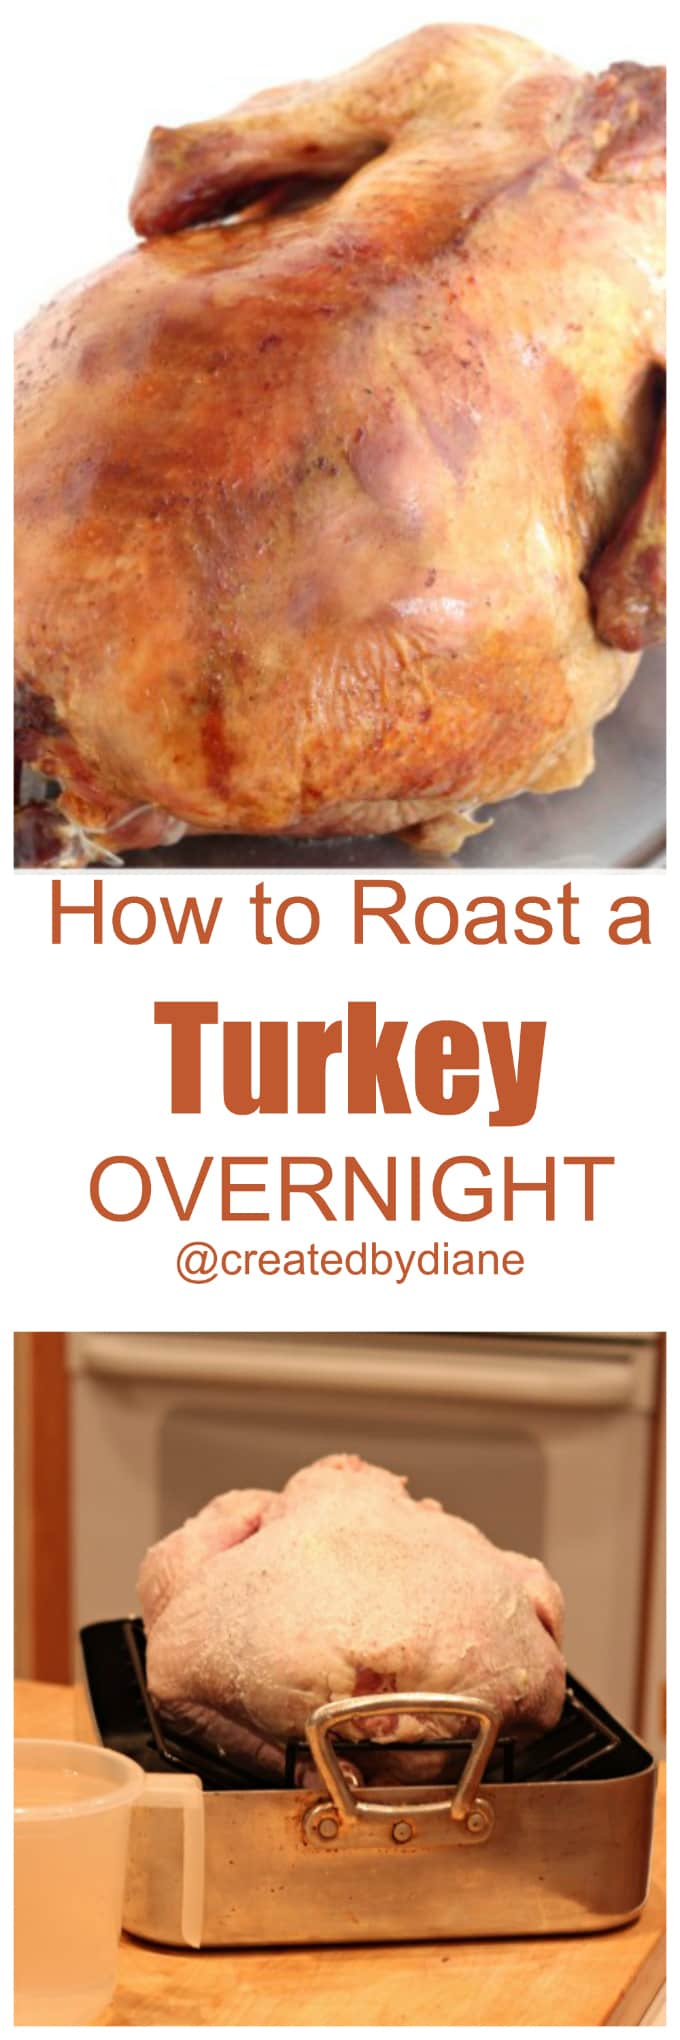 roast-a-turkey-overnight-createdbydiane